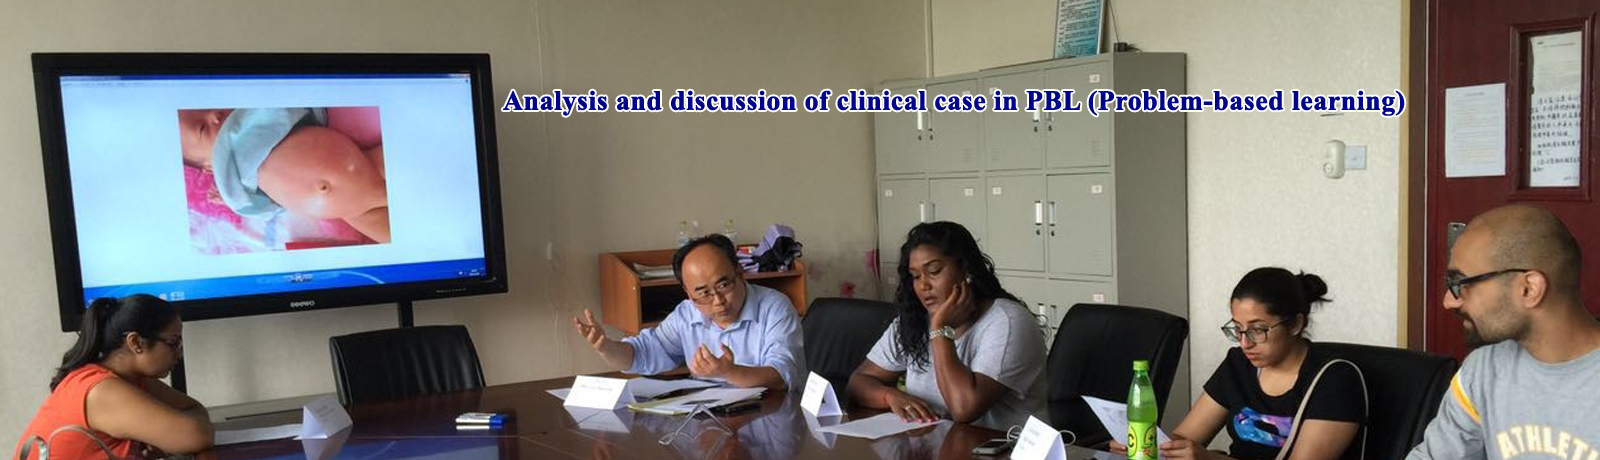 Analysis and discussion of clinical case in PBL (Problem-based learning)